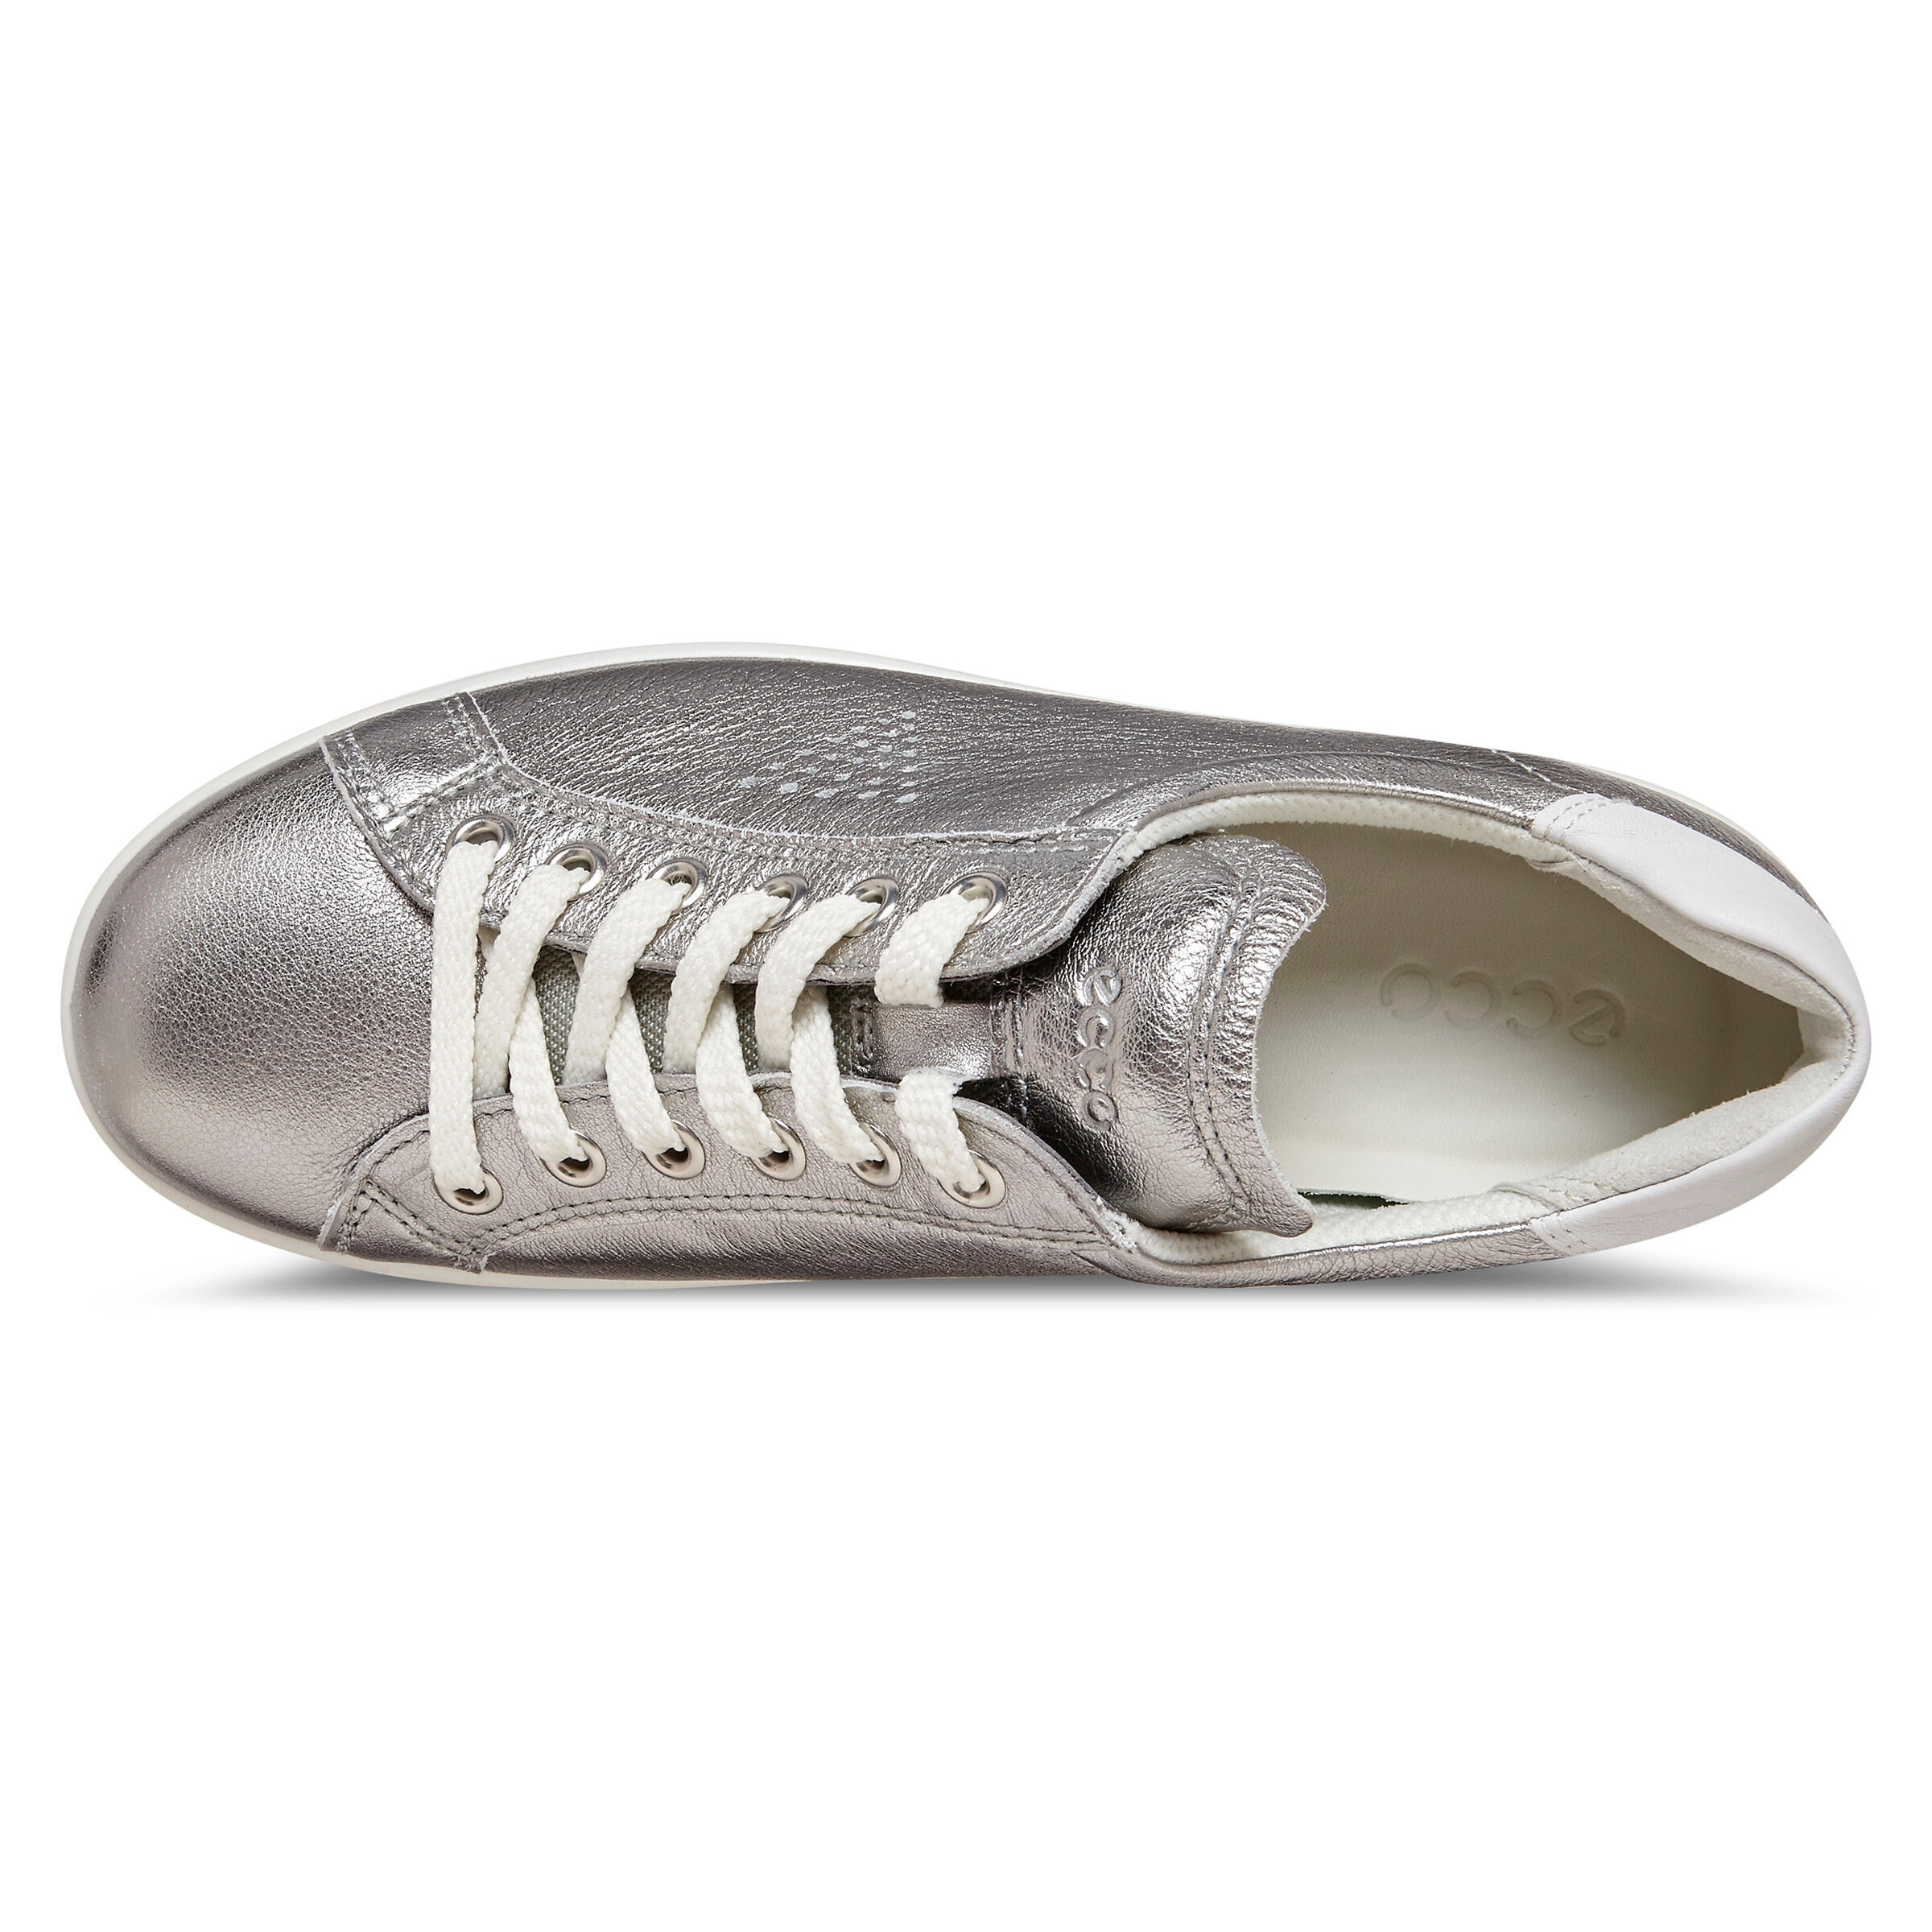 8ae245a9d96d ecco soft silver for sale   OFF77% Discounts